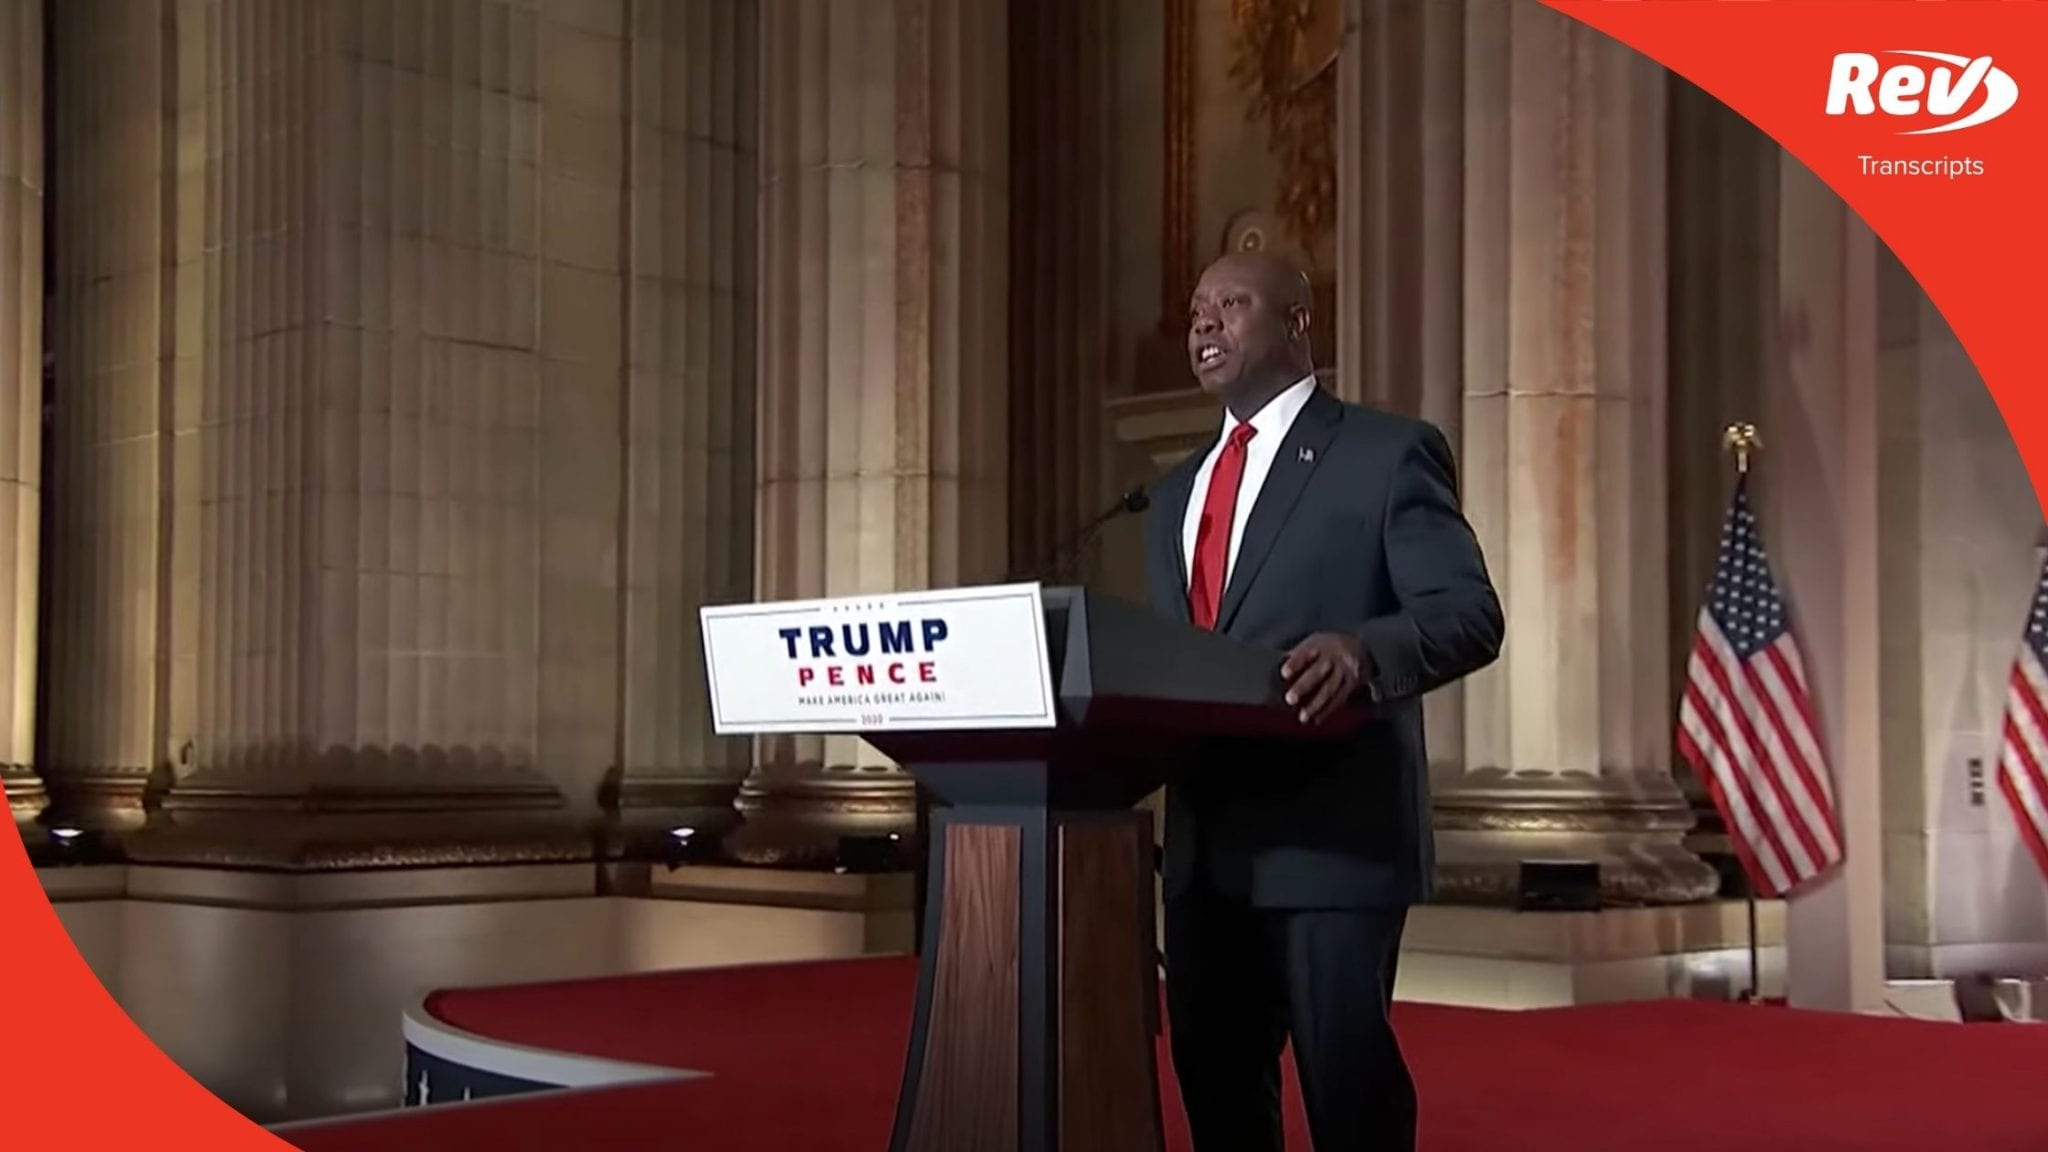 Senator Tim Scott 2020 RNC Speech Transcript